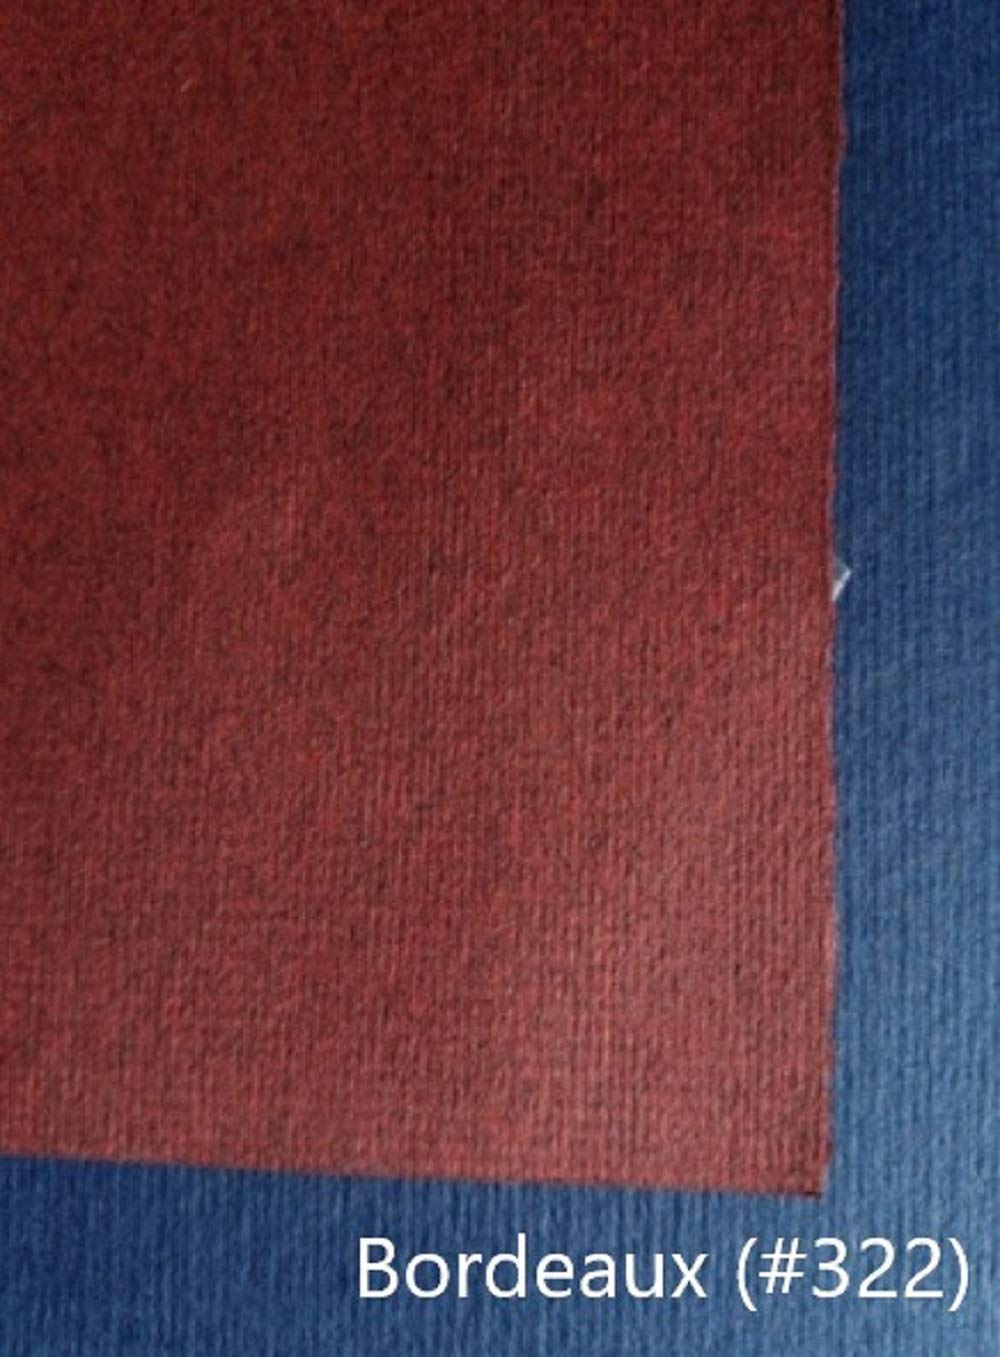 Bugra Paper Hahnemuhle, Bordeaux Burgandy # 322, 33'' x 41'', 130 GSM (10 Sheet Package) by Bugra Paper